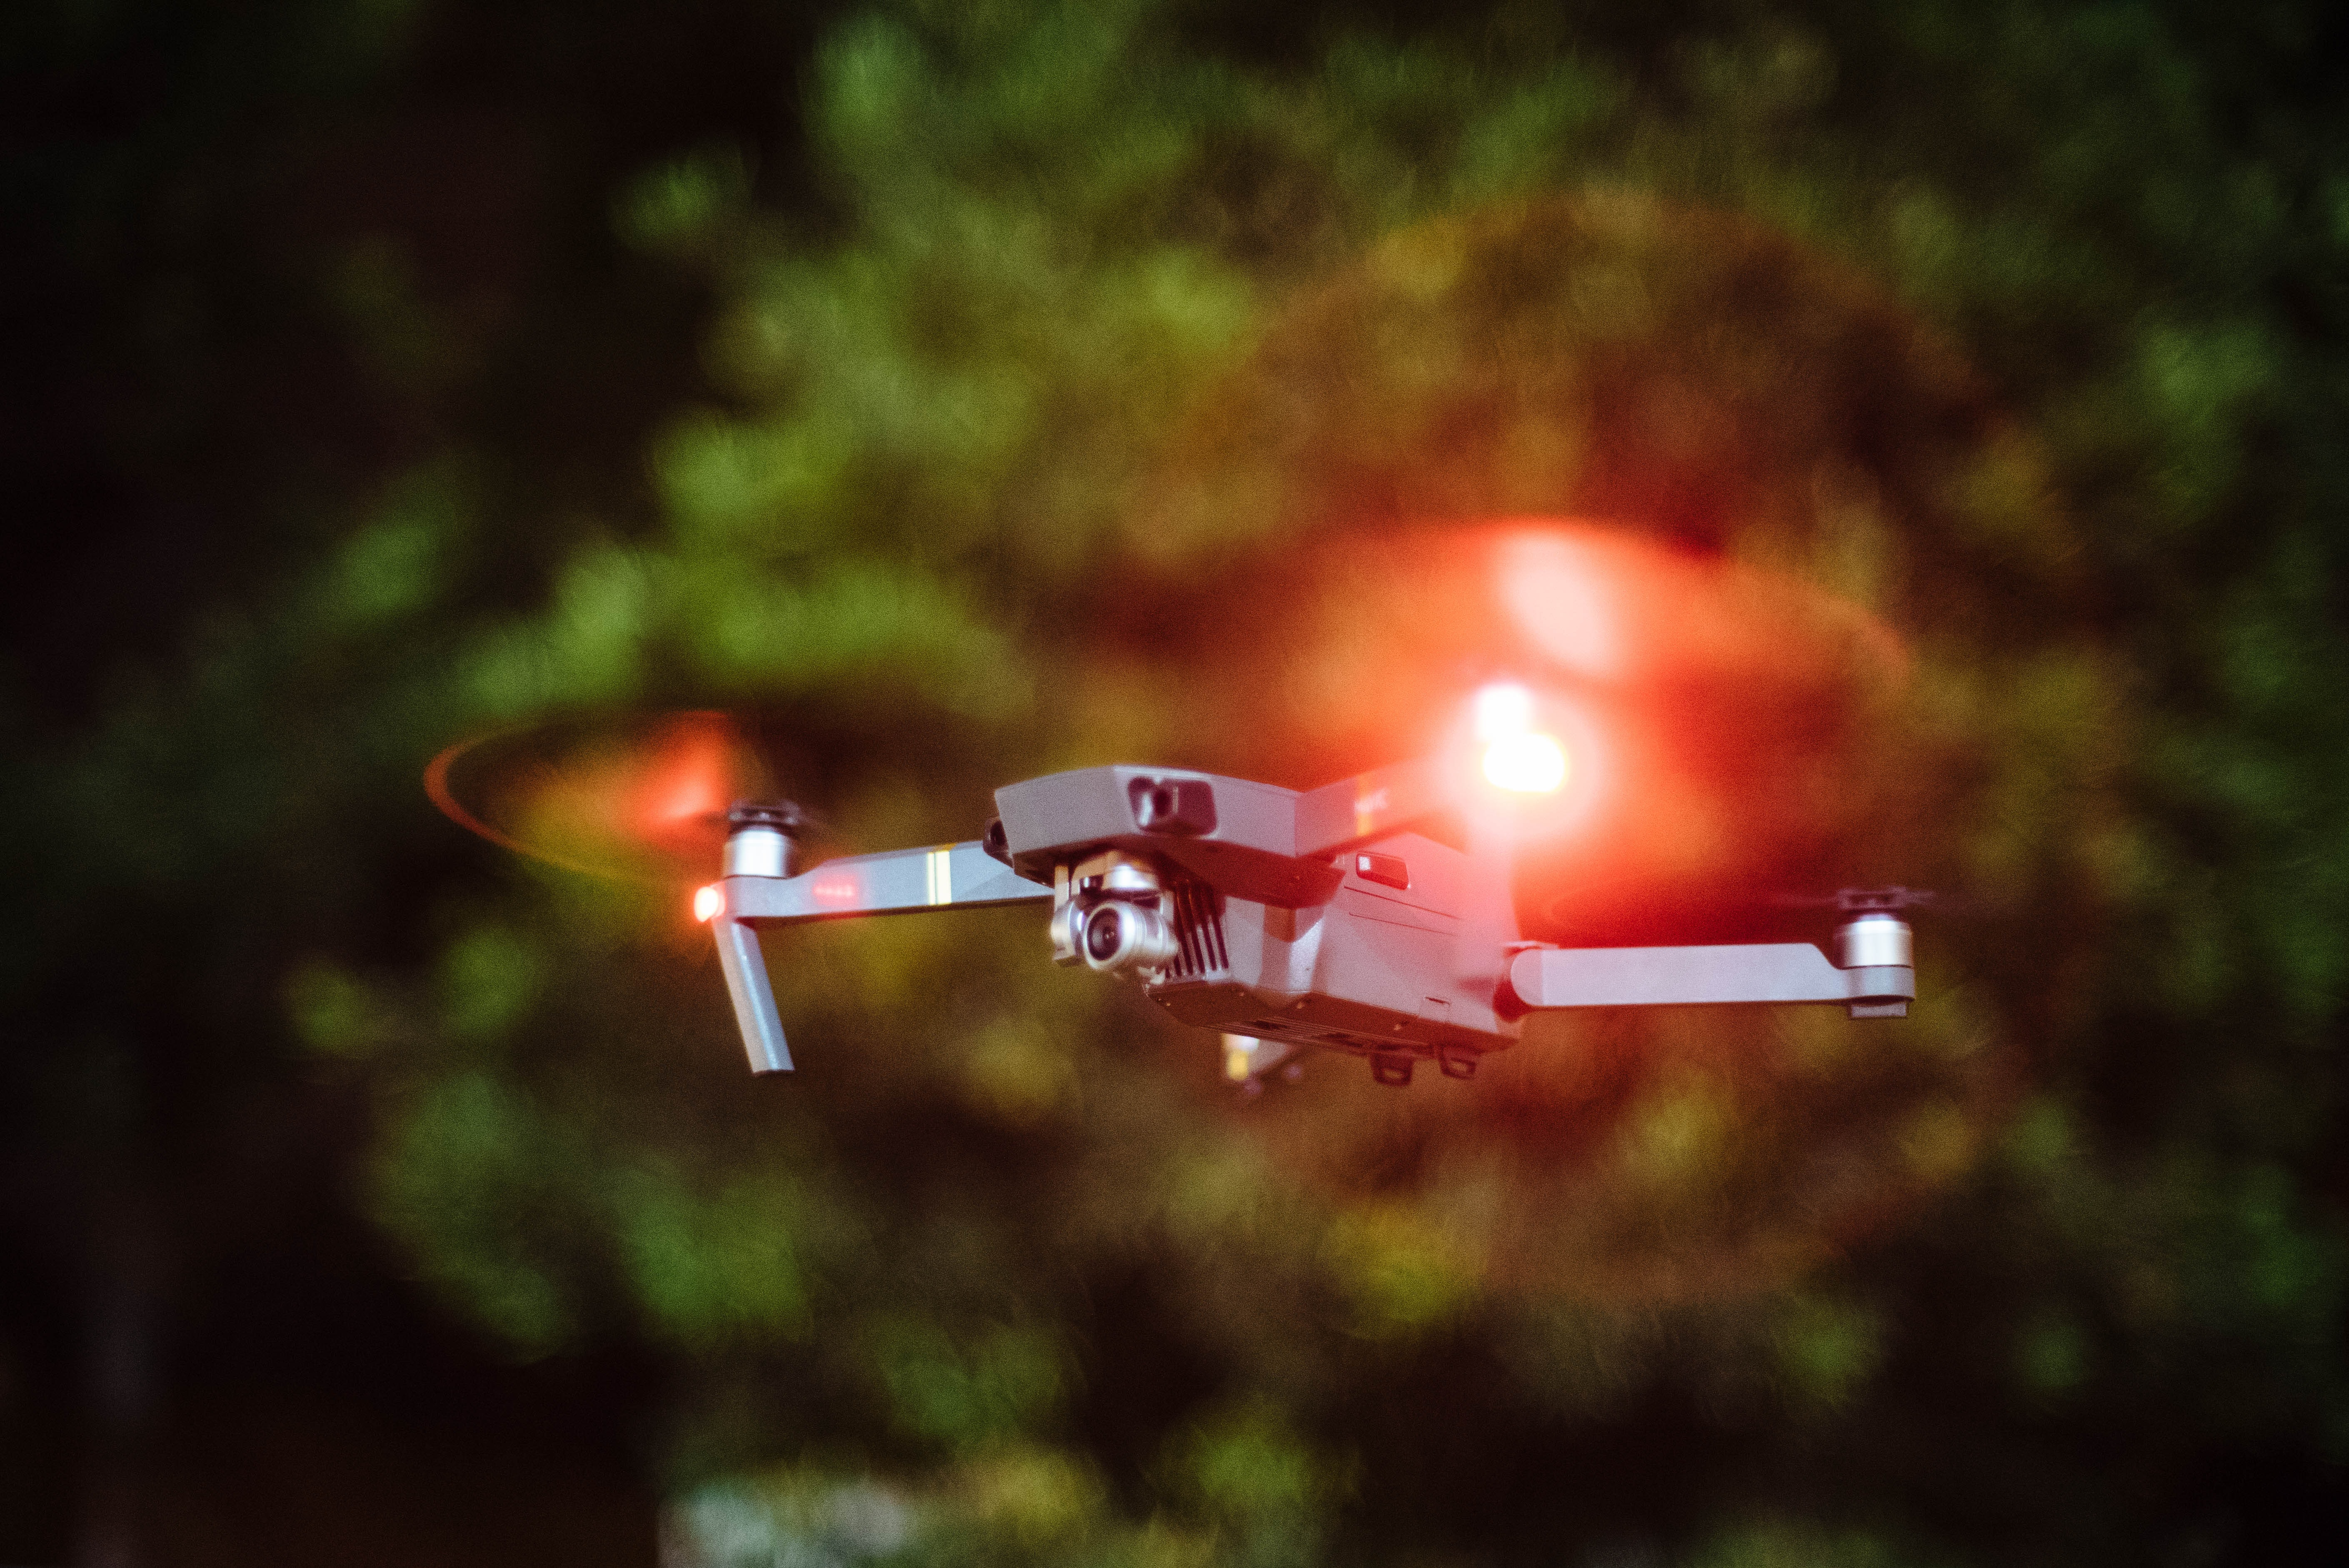 selective focus photography of drone flying on mid-air during nighttime